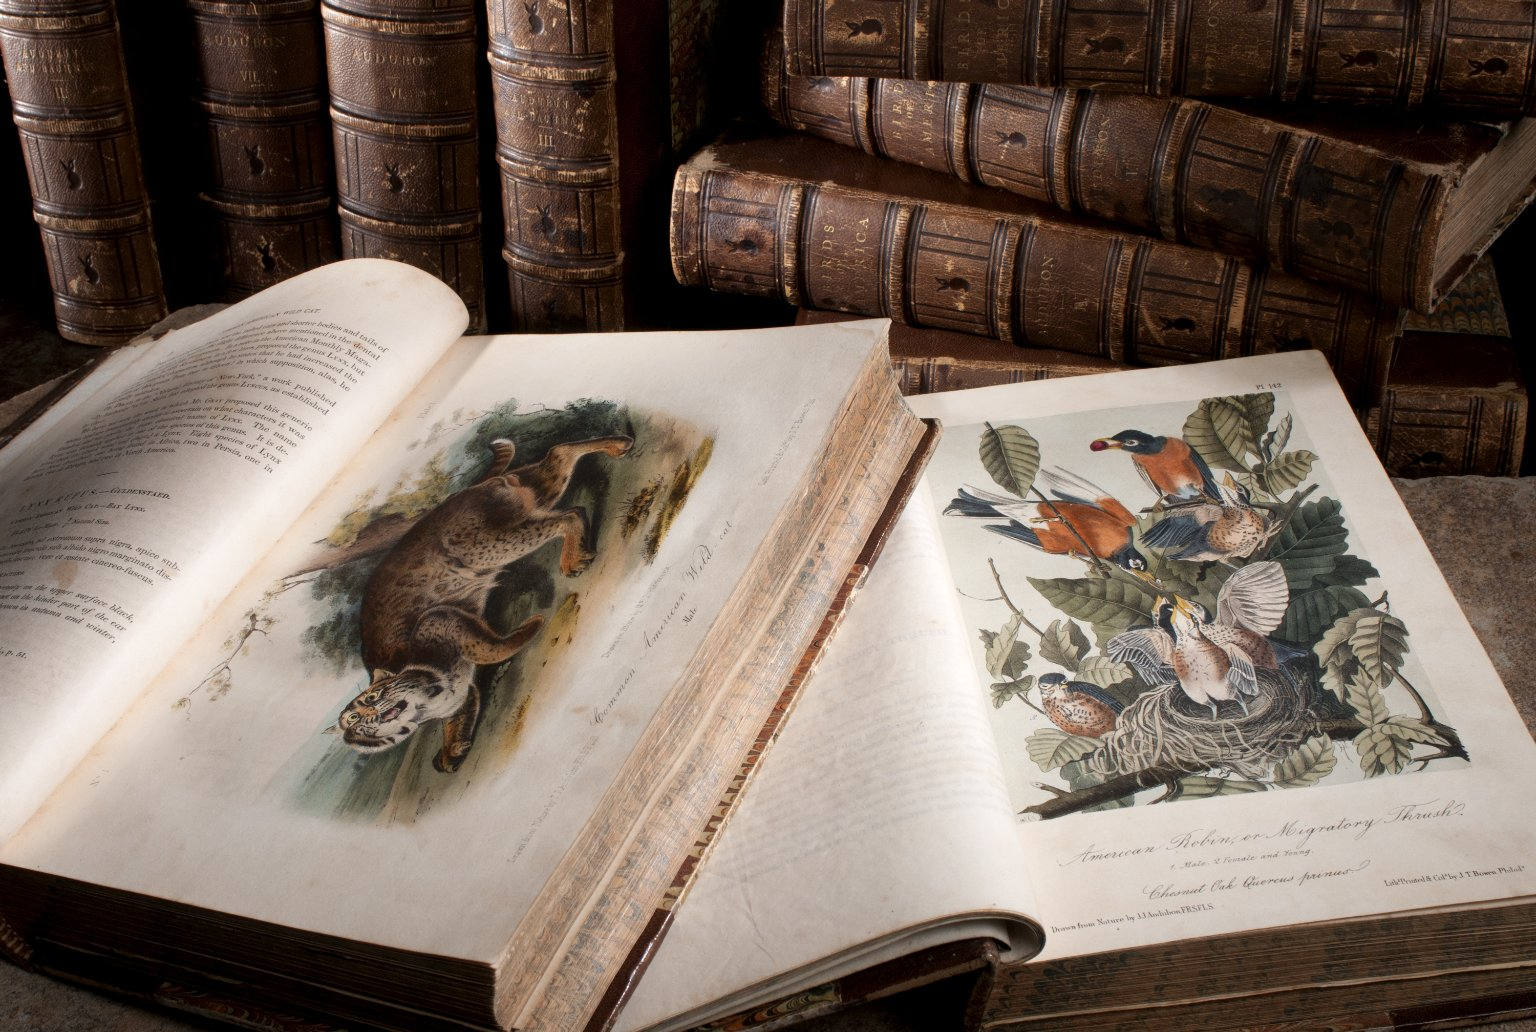 Montage of rare books by John James Audubon